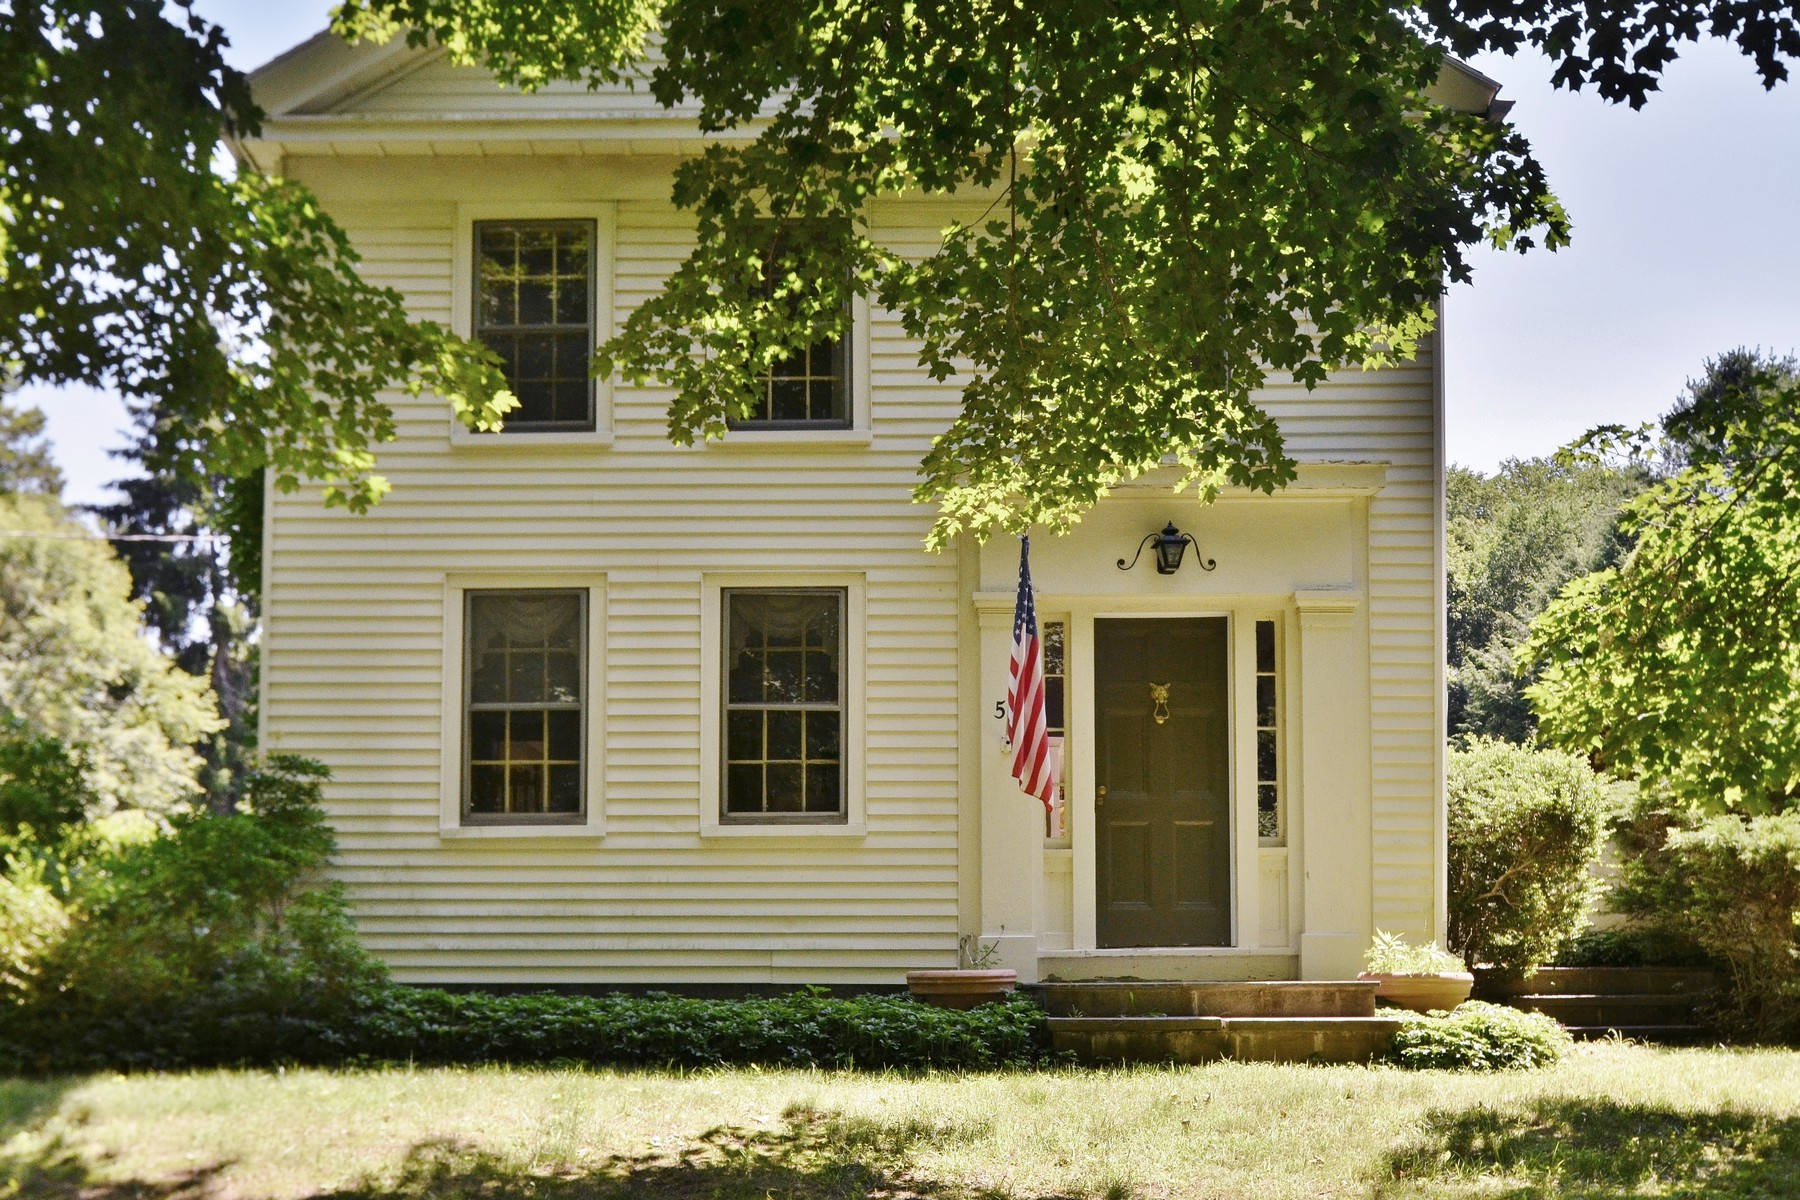 Single Family Home for Sale at Charming Antique Light Filled Home 55 Sill Ln Old Lyme, Connecticut 06371 United States